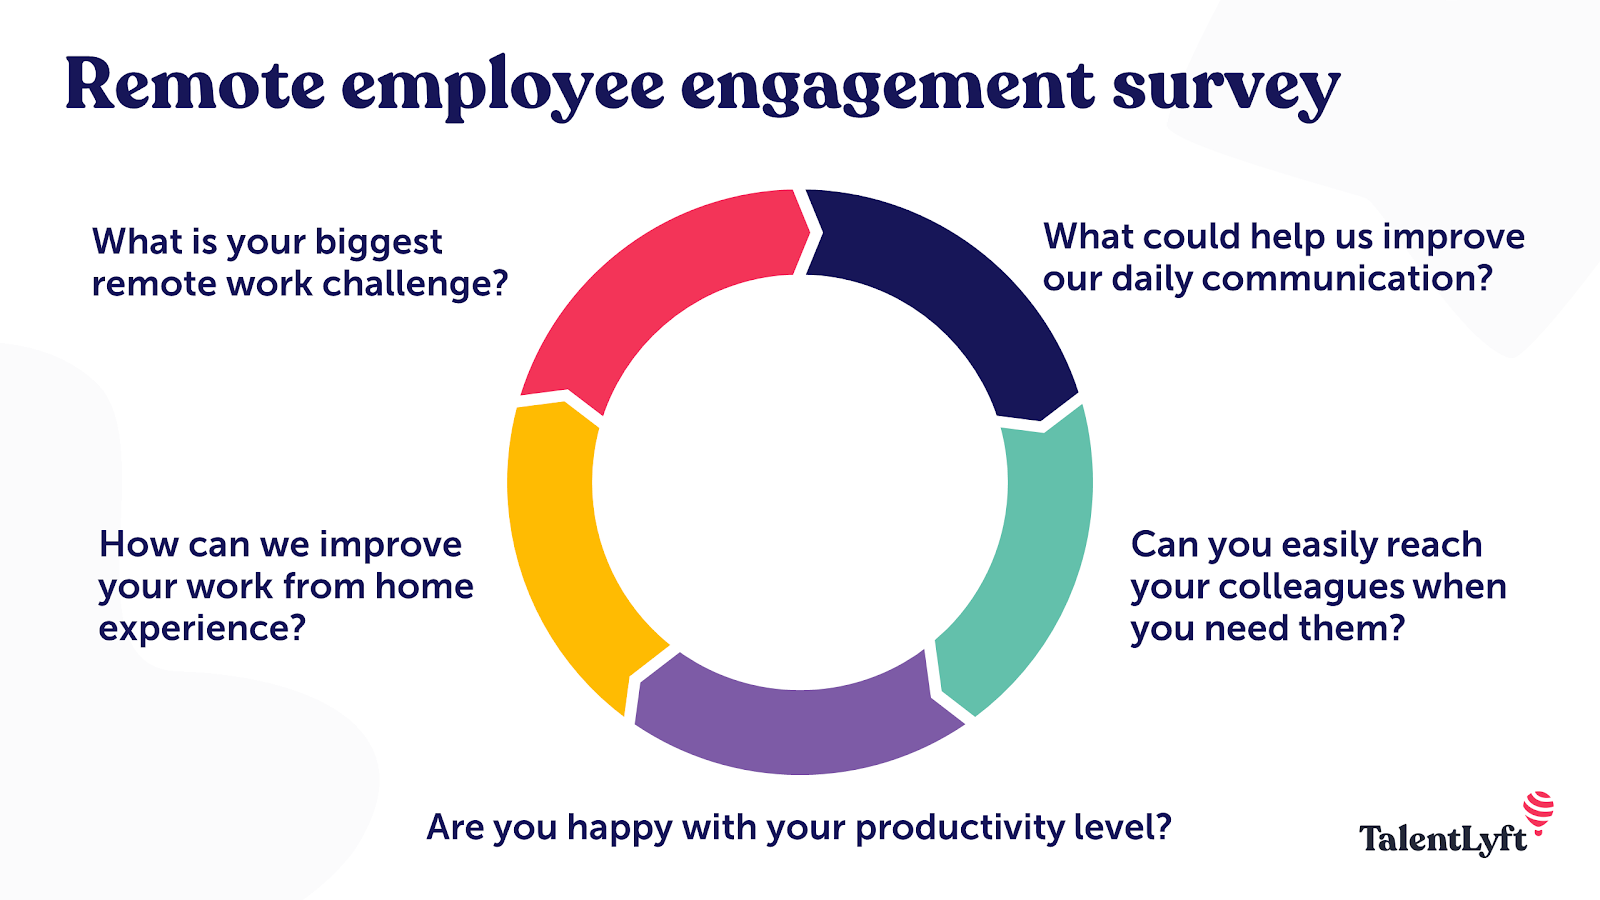 Remote employee engagement survey questions